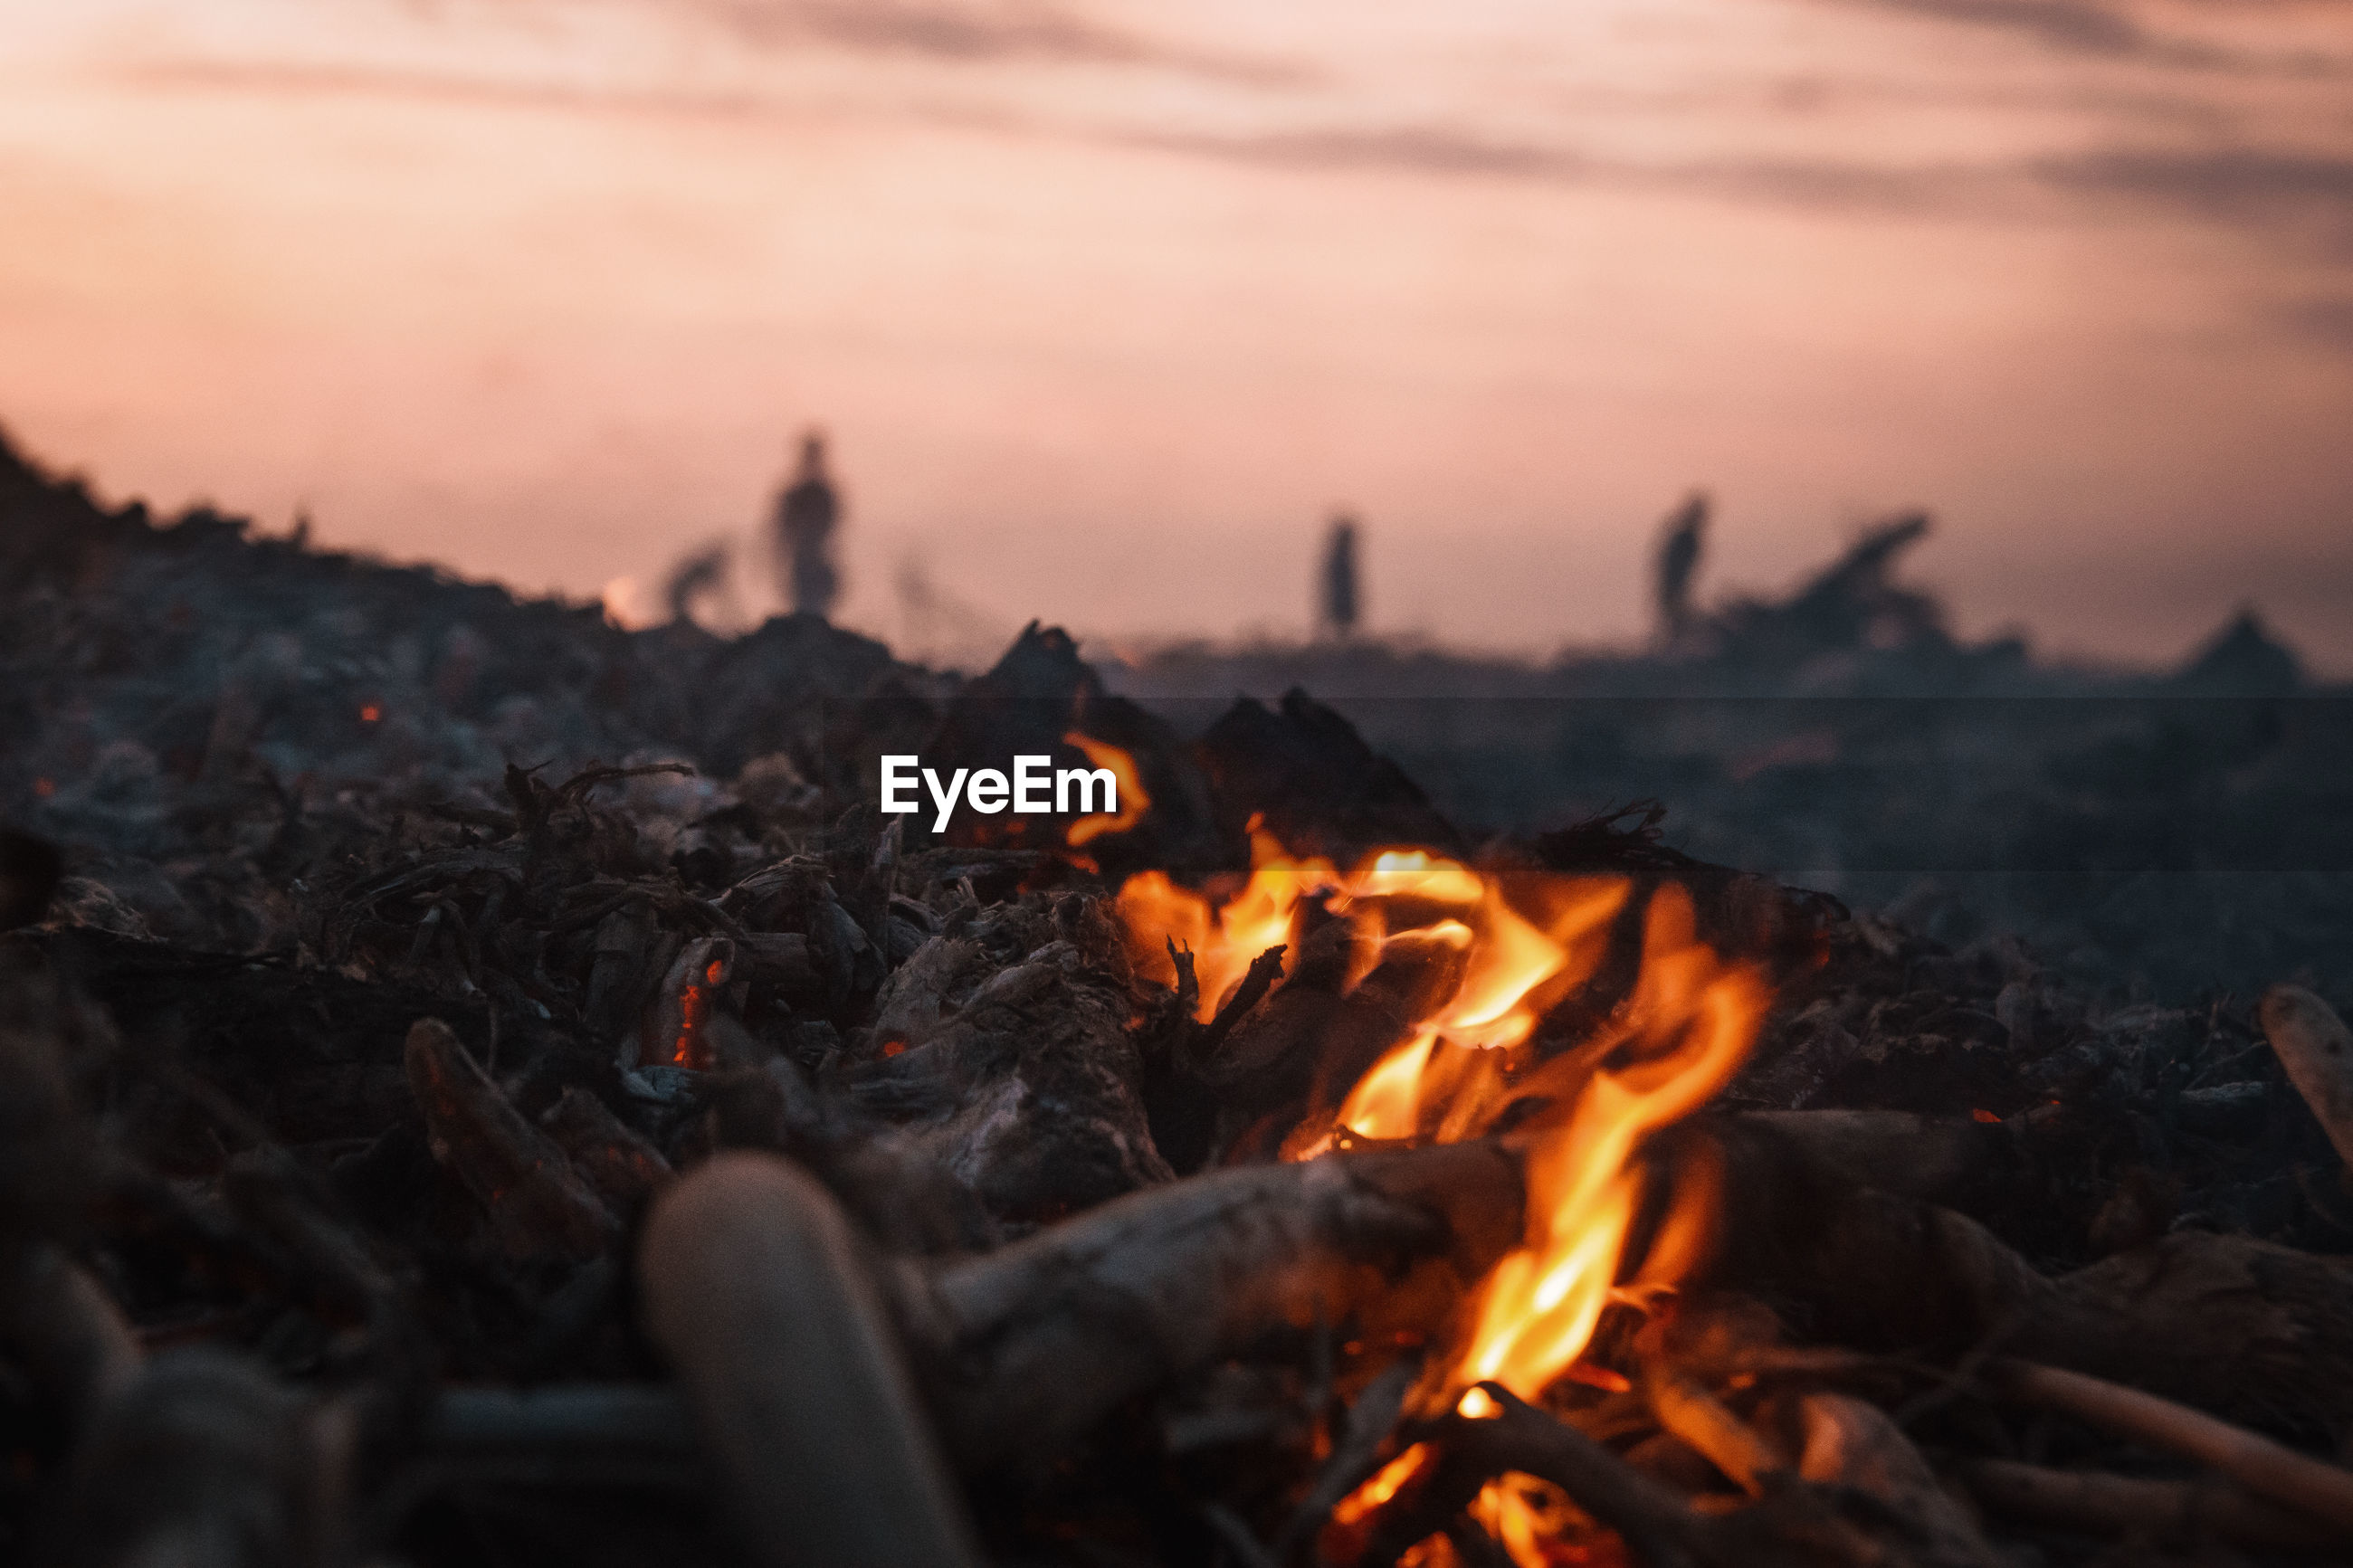 Close-up of bonfire against sky during sunset